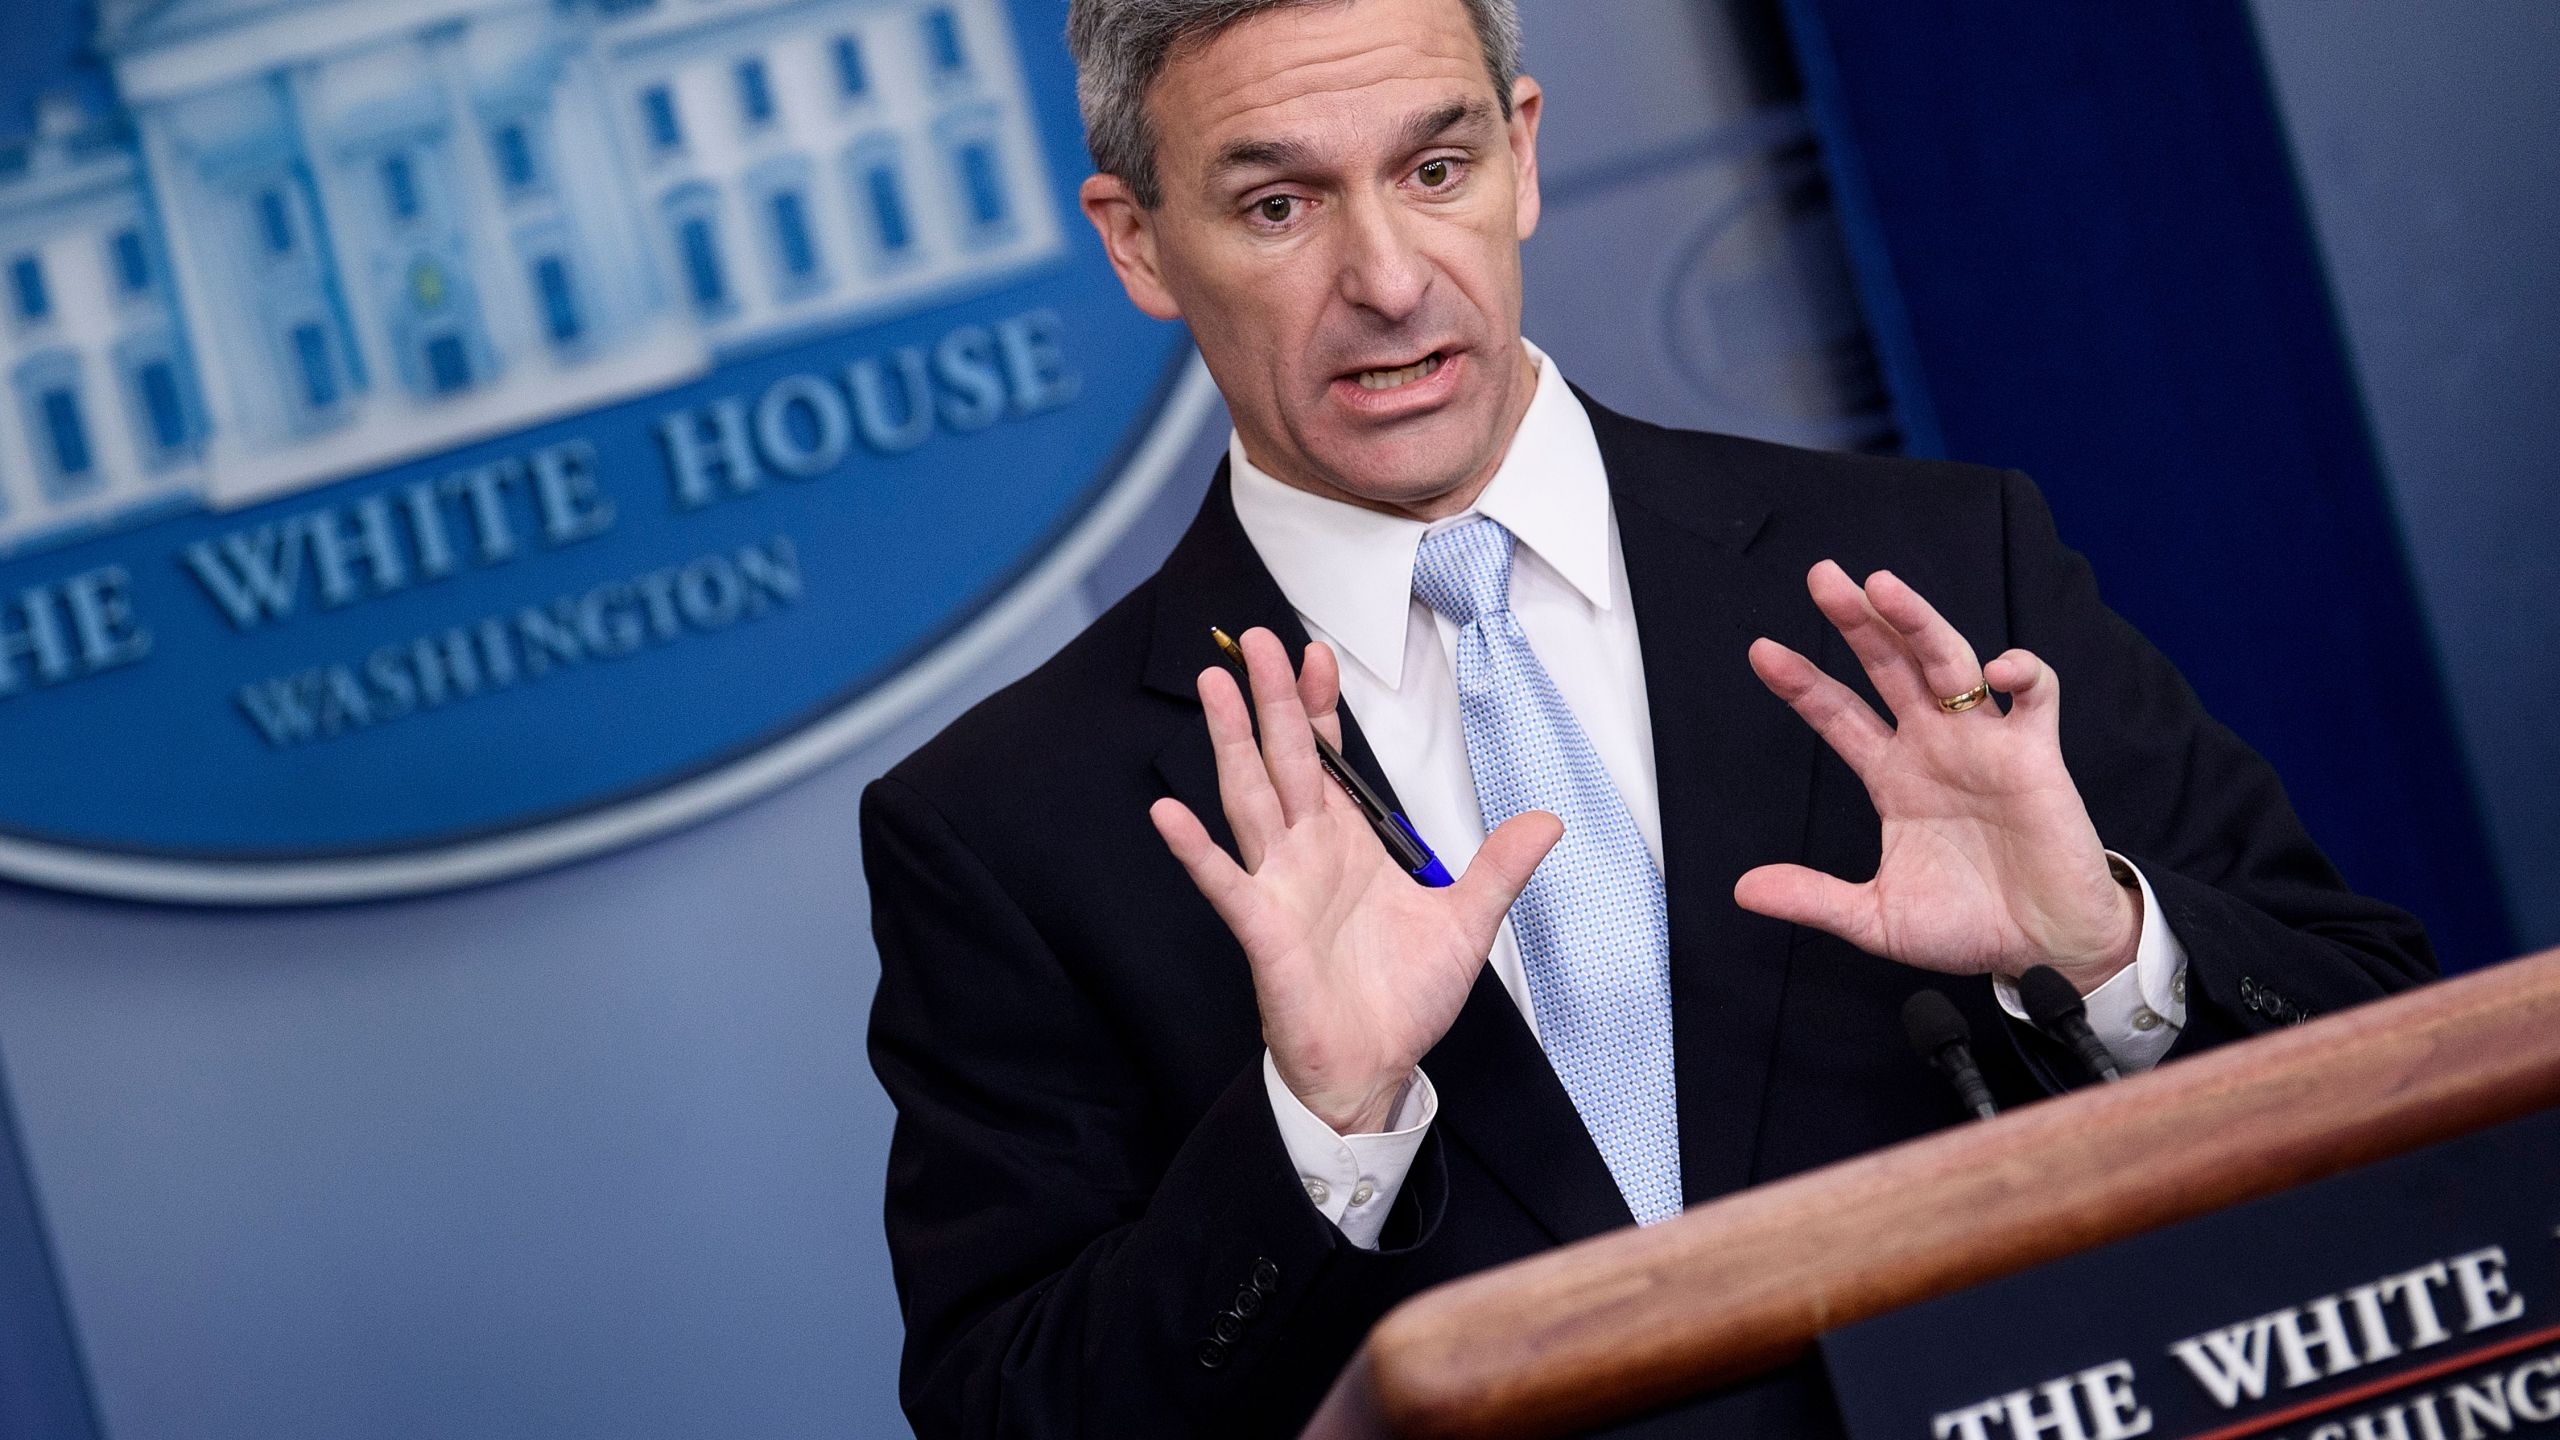 Acting Director of the U.S. Citizenship and Immigration Services Ken Cuccinelli speaks during a briefing at the White House Aug. 12, 2019, in Washington, D.C. (Credit: BRENDAN SMIALOWSKI/AFP/Getty Images)